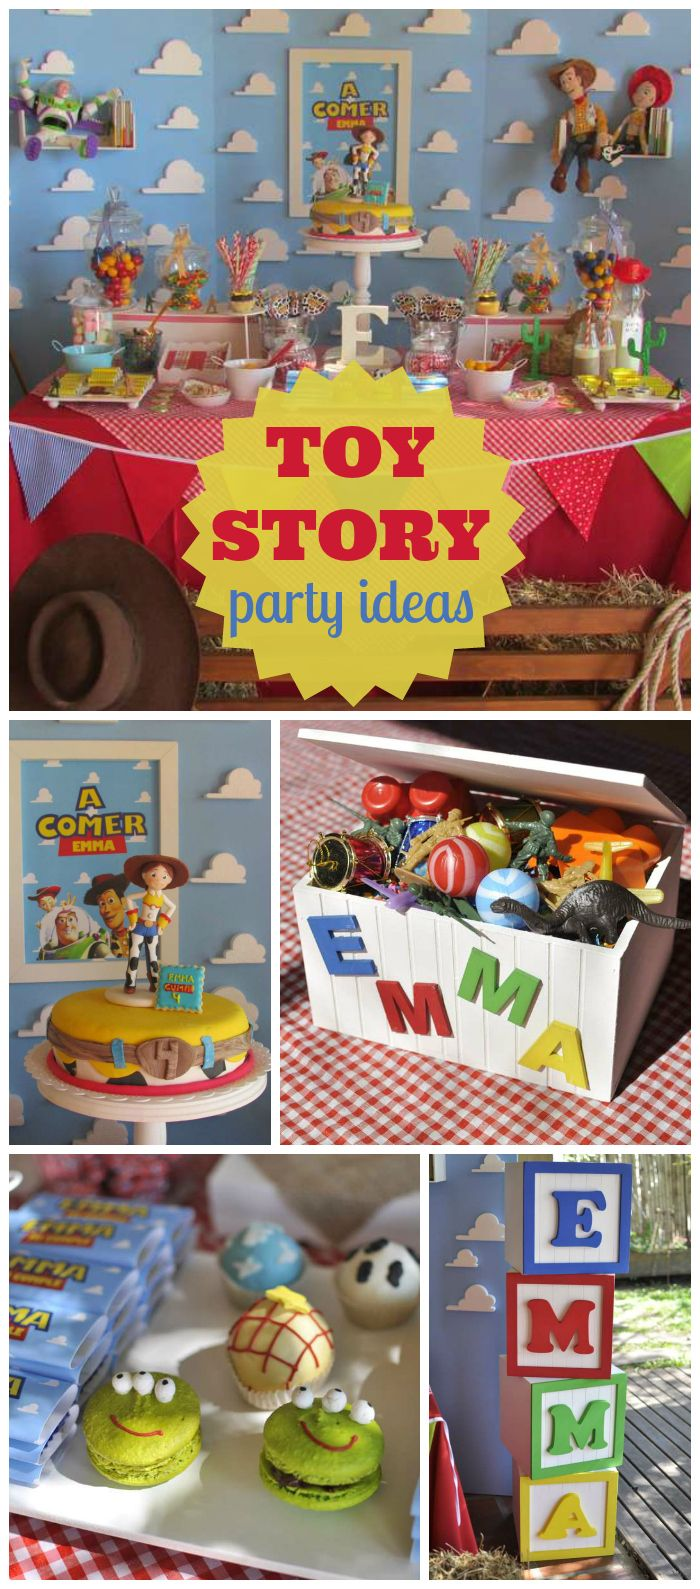 A Toy Story birthday themed party with fun decorations and cake! See more party planning ideas at CatchMyParty.com!